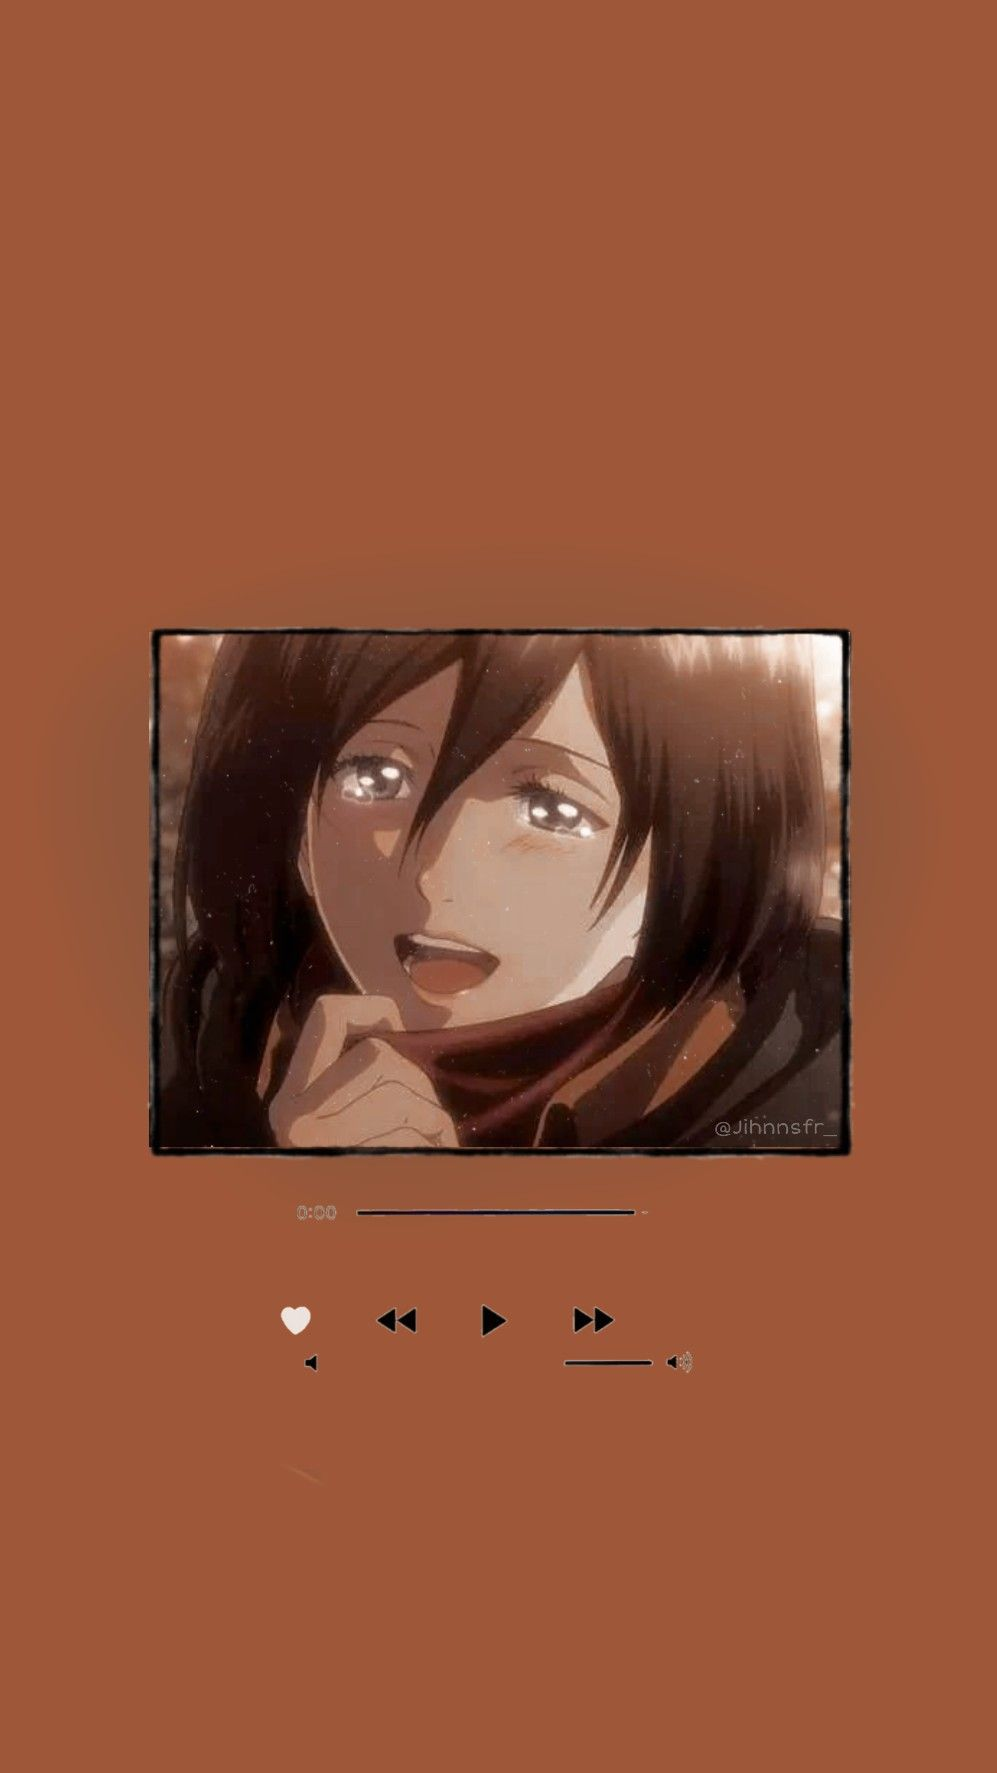 Mikasa Ackerman Anime Wallpaper Anime Background Cute Anime Wallpaper